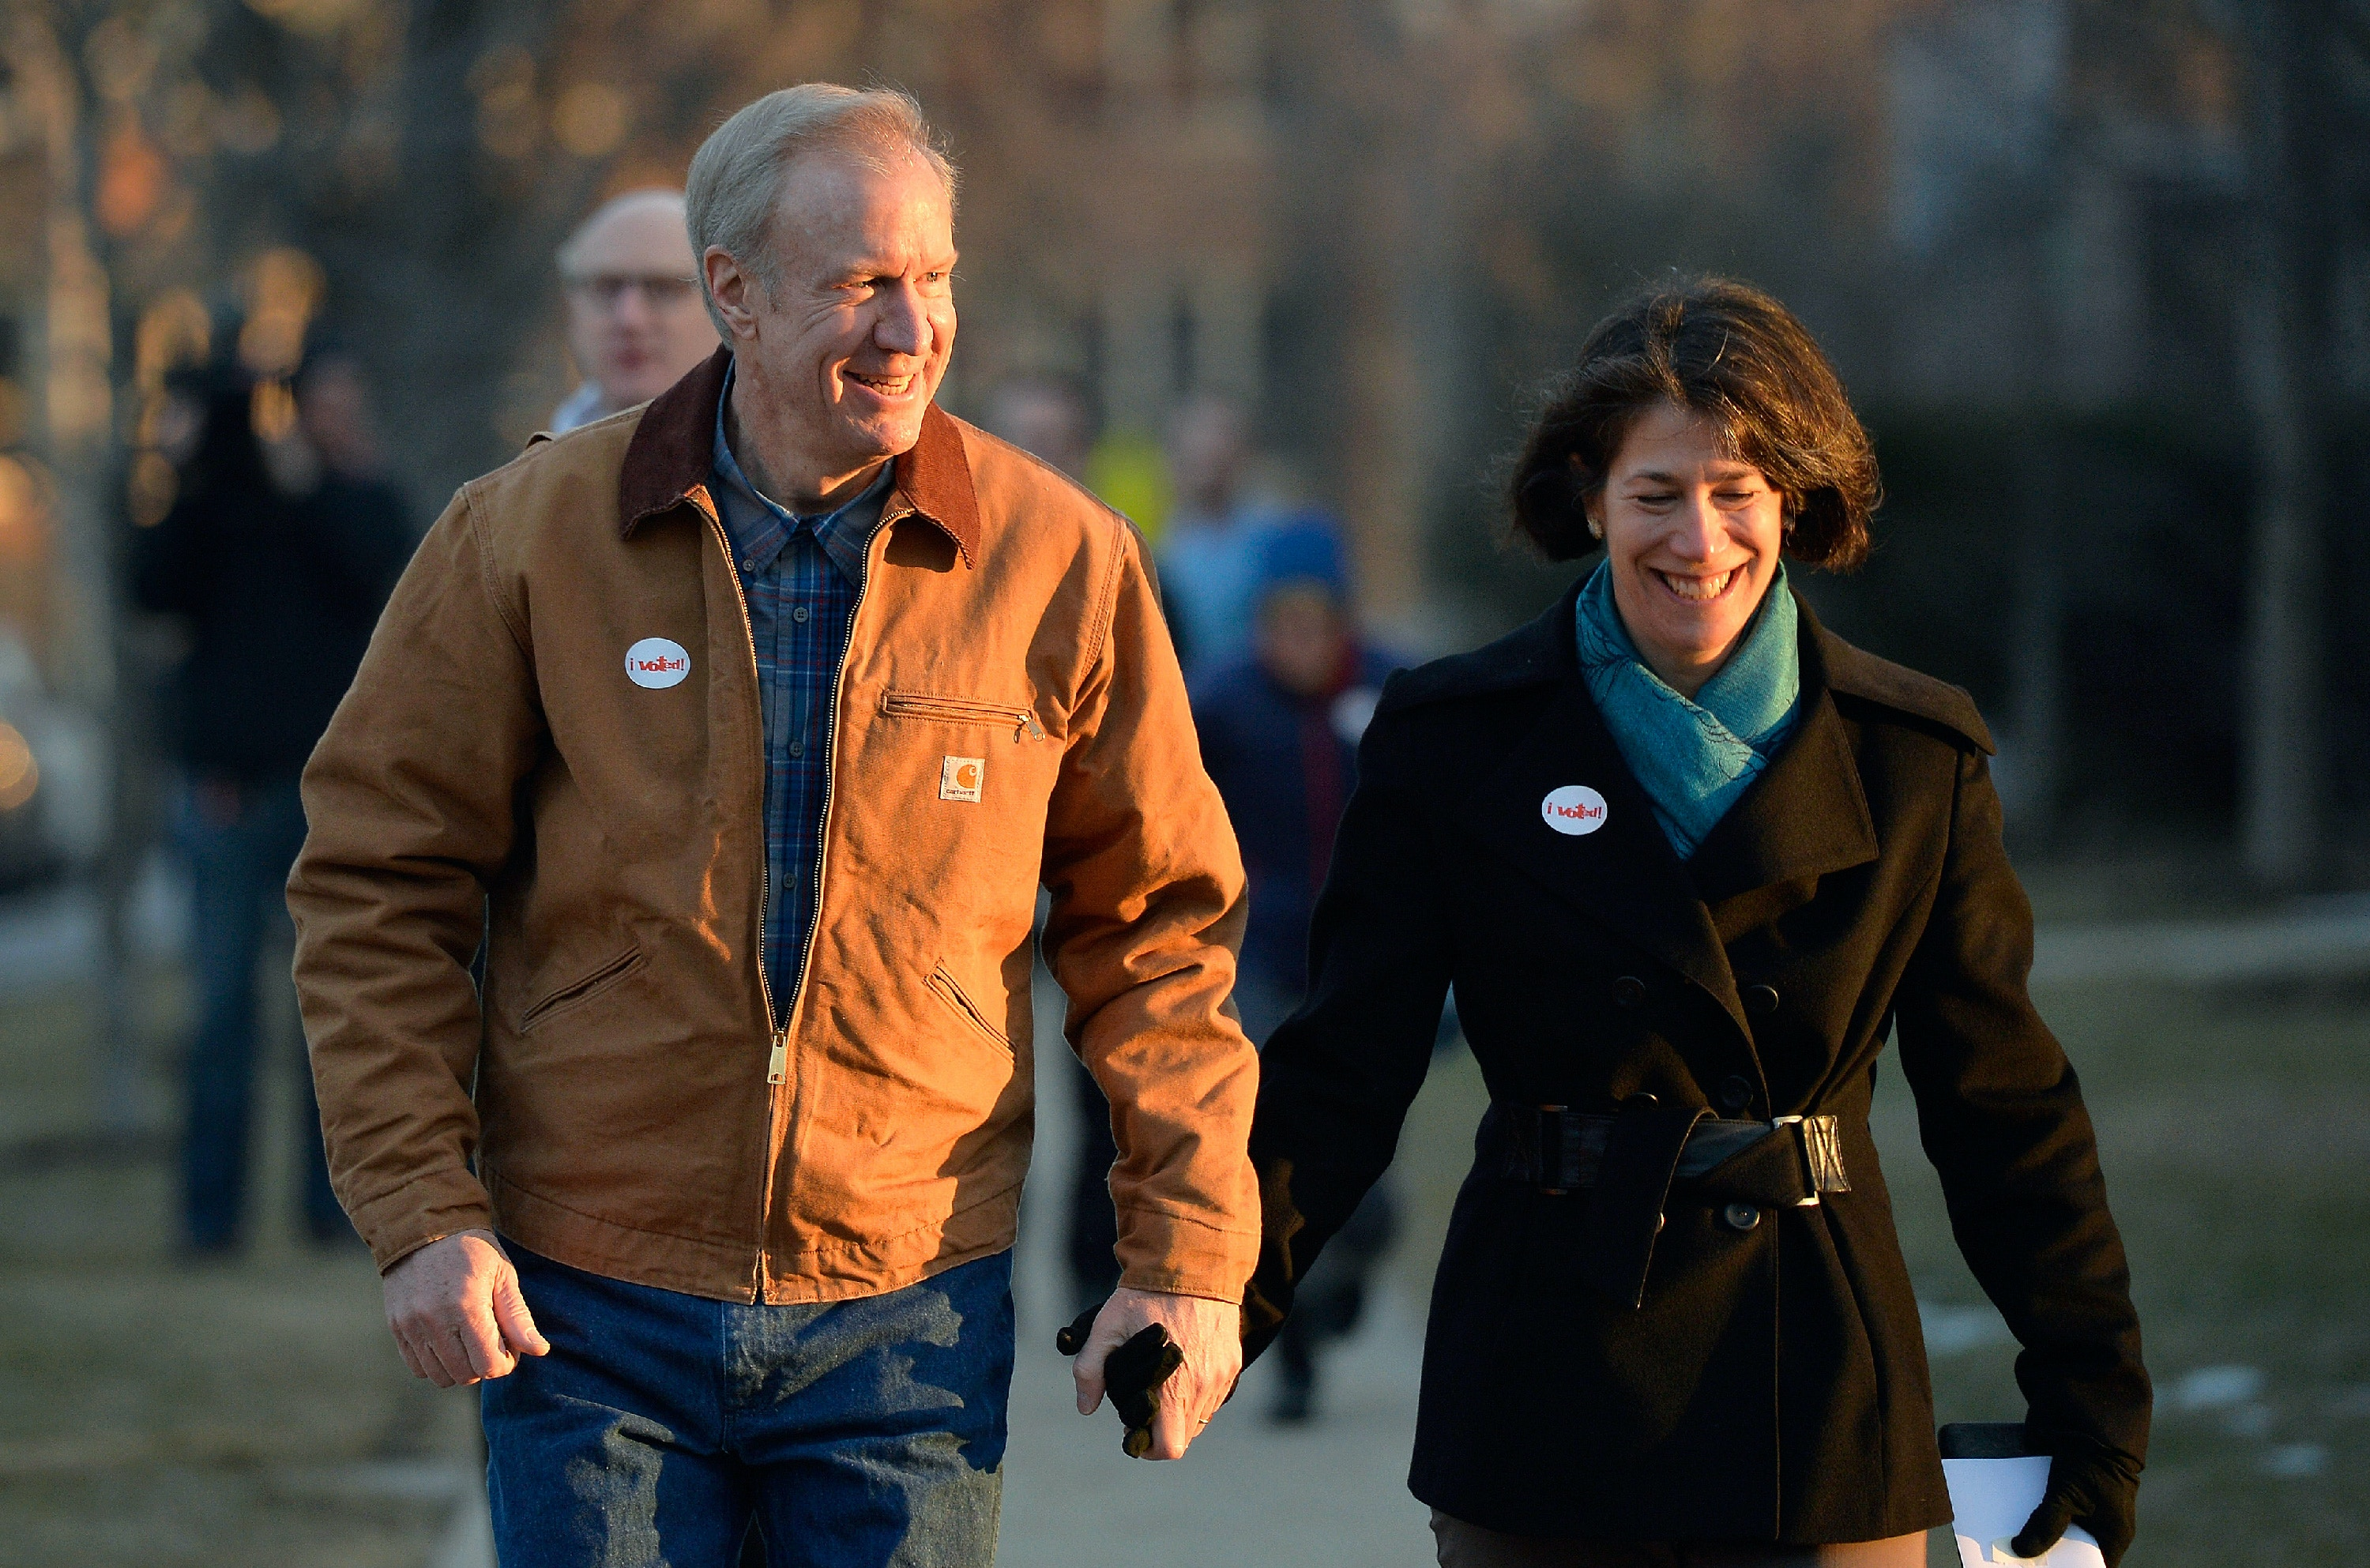 WINNETKA, IL - MARCH 18: Republican Gubernatorial Candidate Bruce Rauner (L) and his wife Diana walk home after voting in the Illinois primary election on March 18, 2014 in Winnetka, Illinois. Rauner, a private equity manager, faces off against State Senator Bill Brady, State Treasurer Dan Rutherford and State Senator Kirk Dillard in the Republican primary.  (Photo by Brian Kersey/Getty Images)